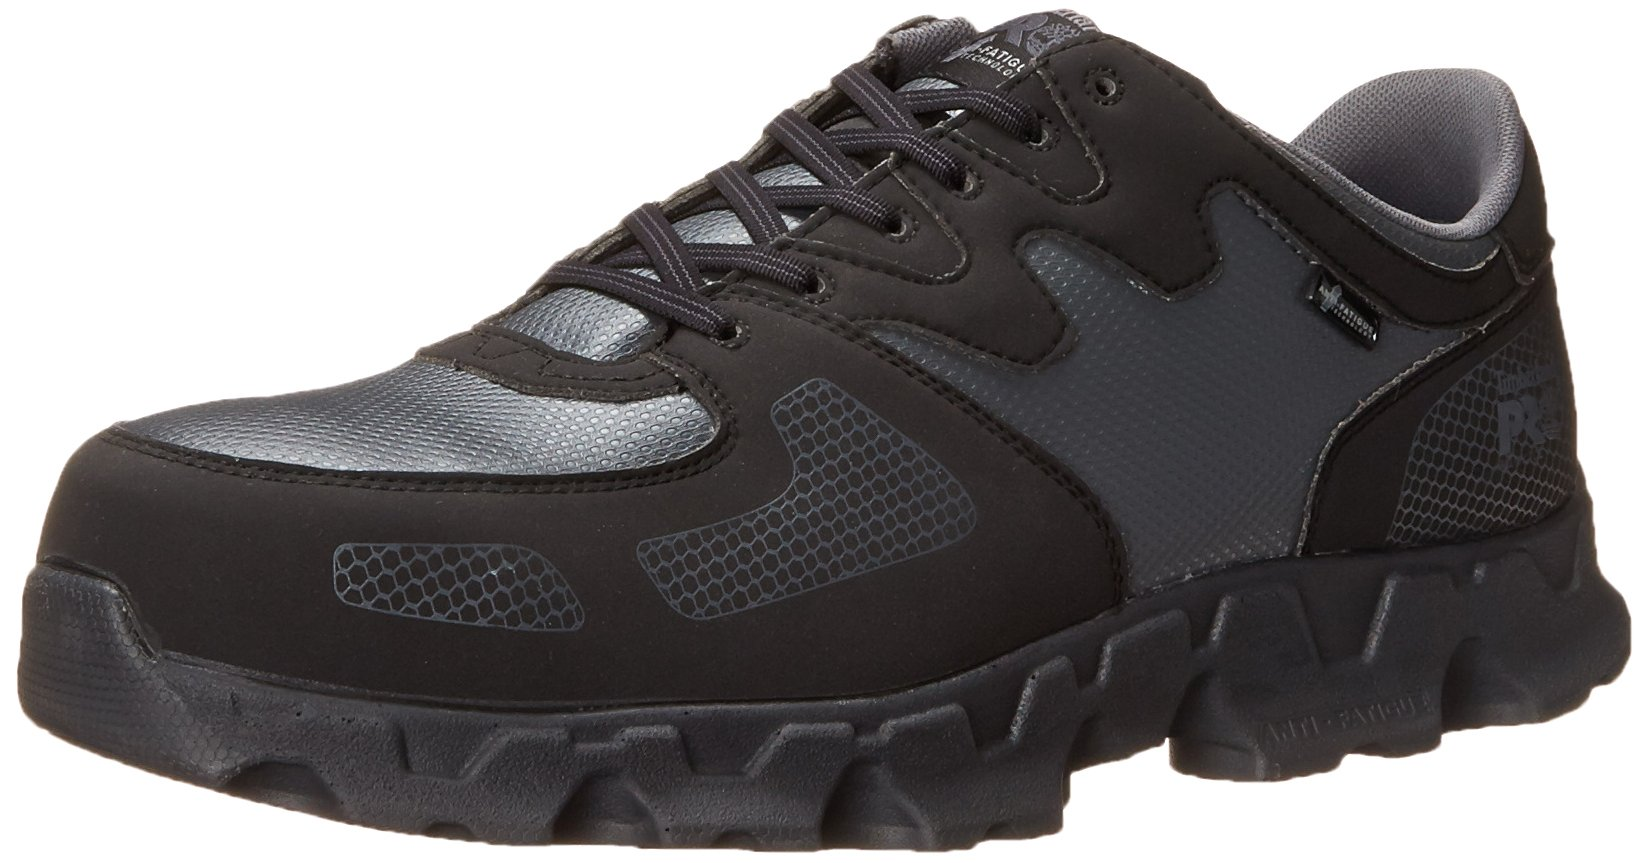 Timberland PRO Men's Powertrain ESD Alloy Toe Work and Hunt Boot, Grey Synthetic, 10.5 W US